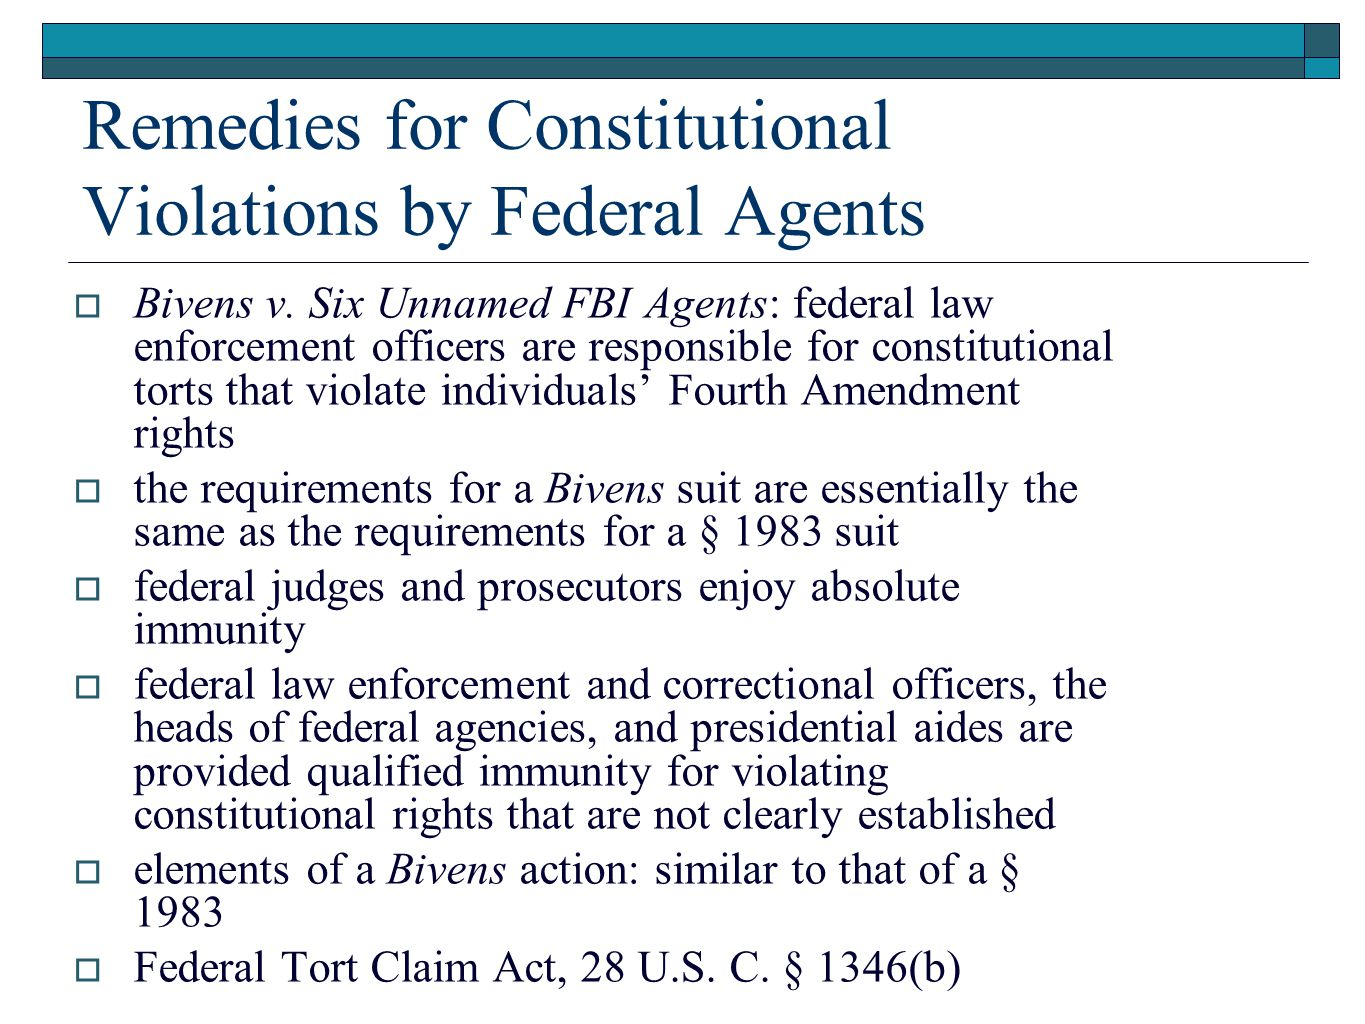 Remedies for Constitutional Violations by Federal Agents